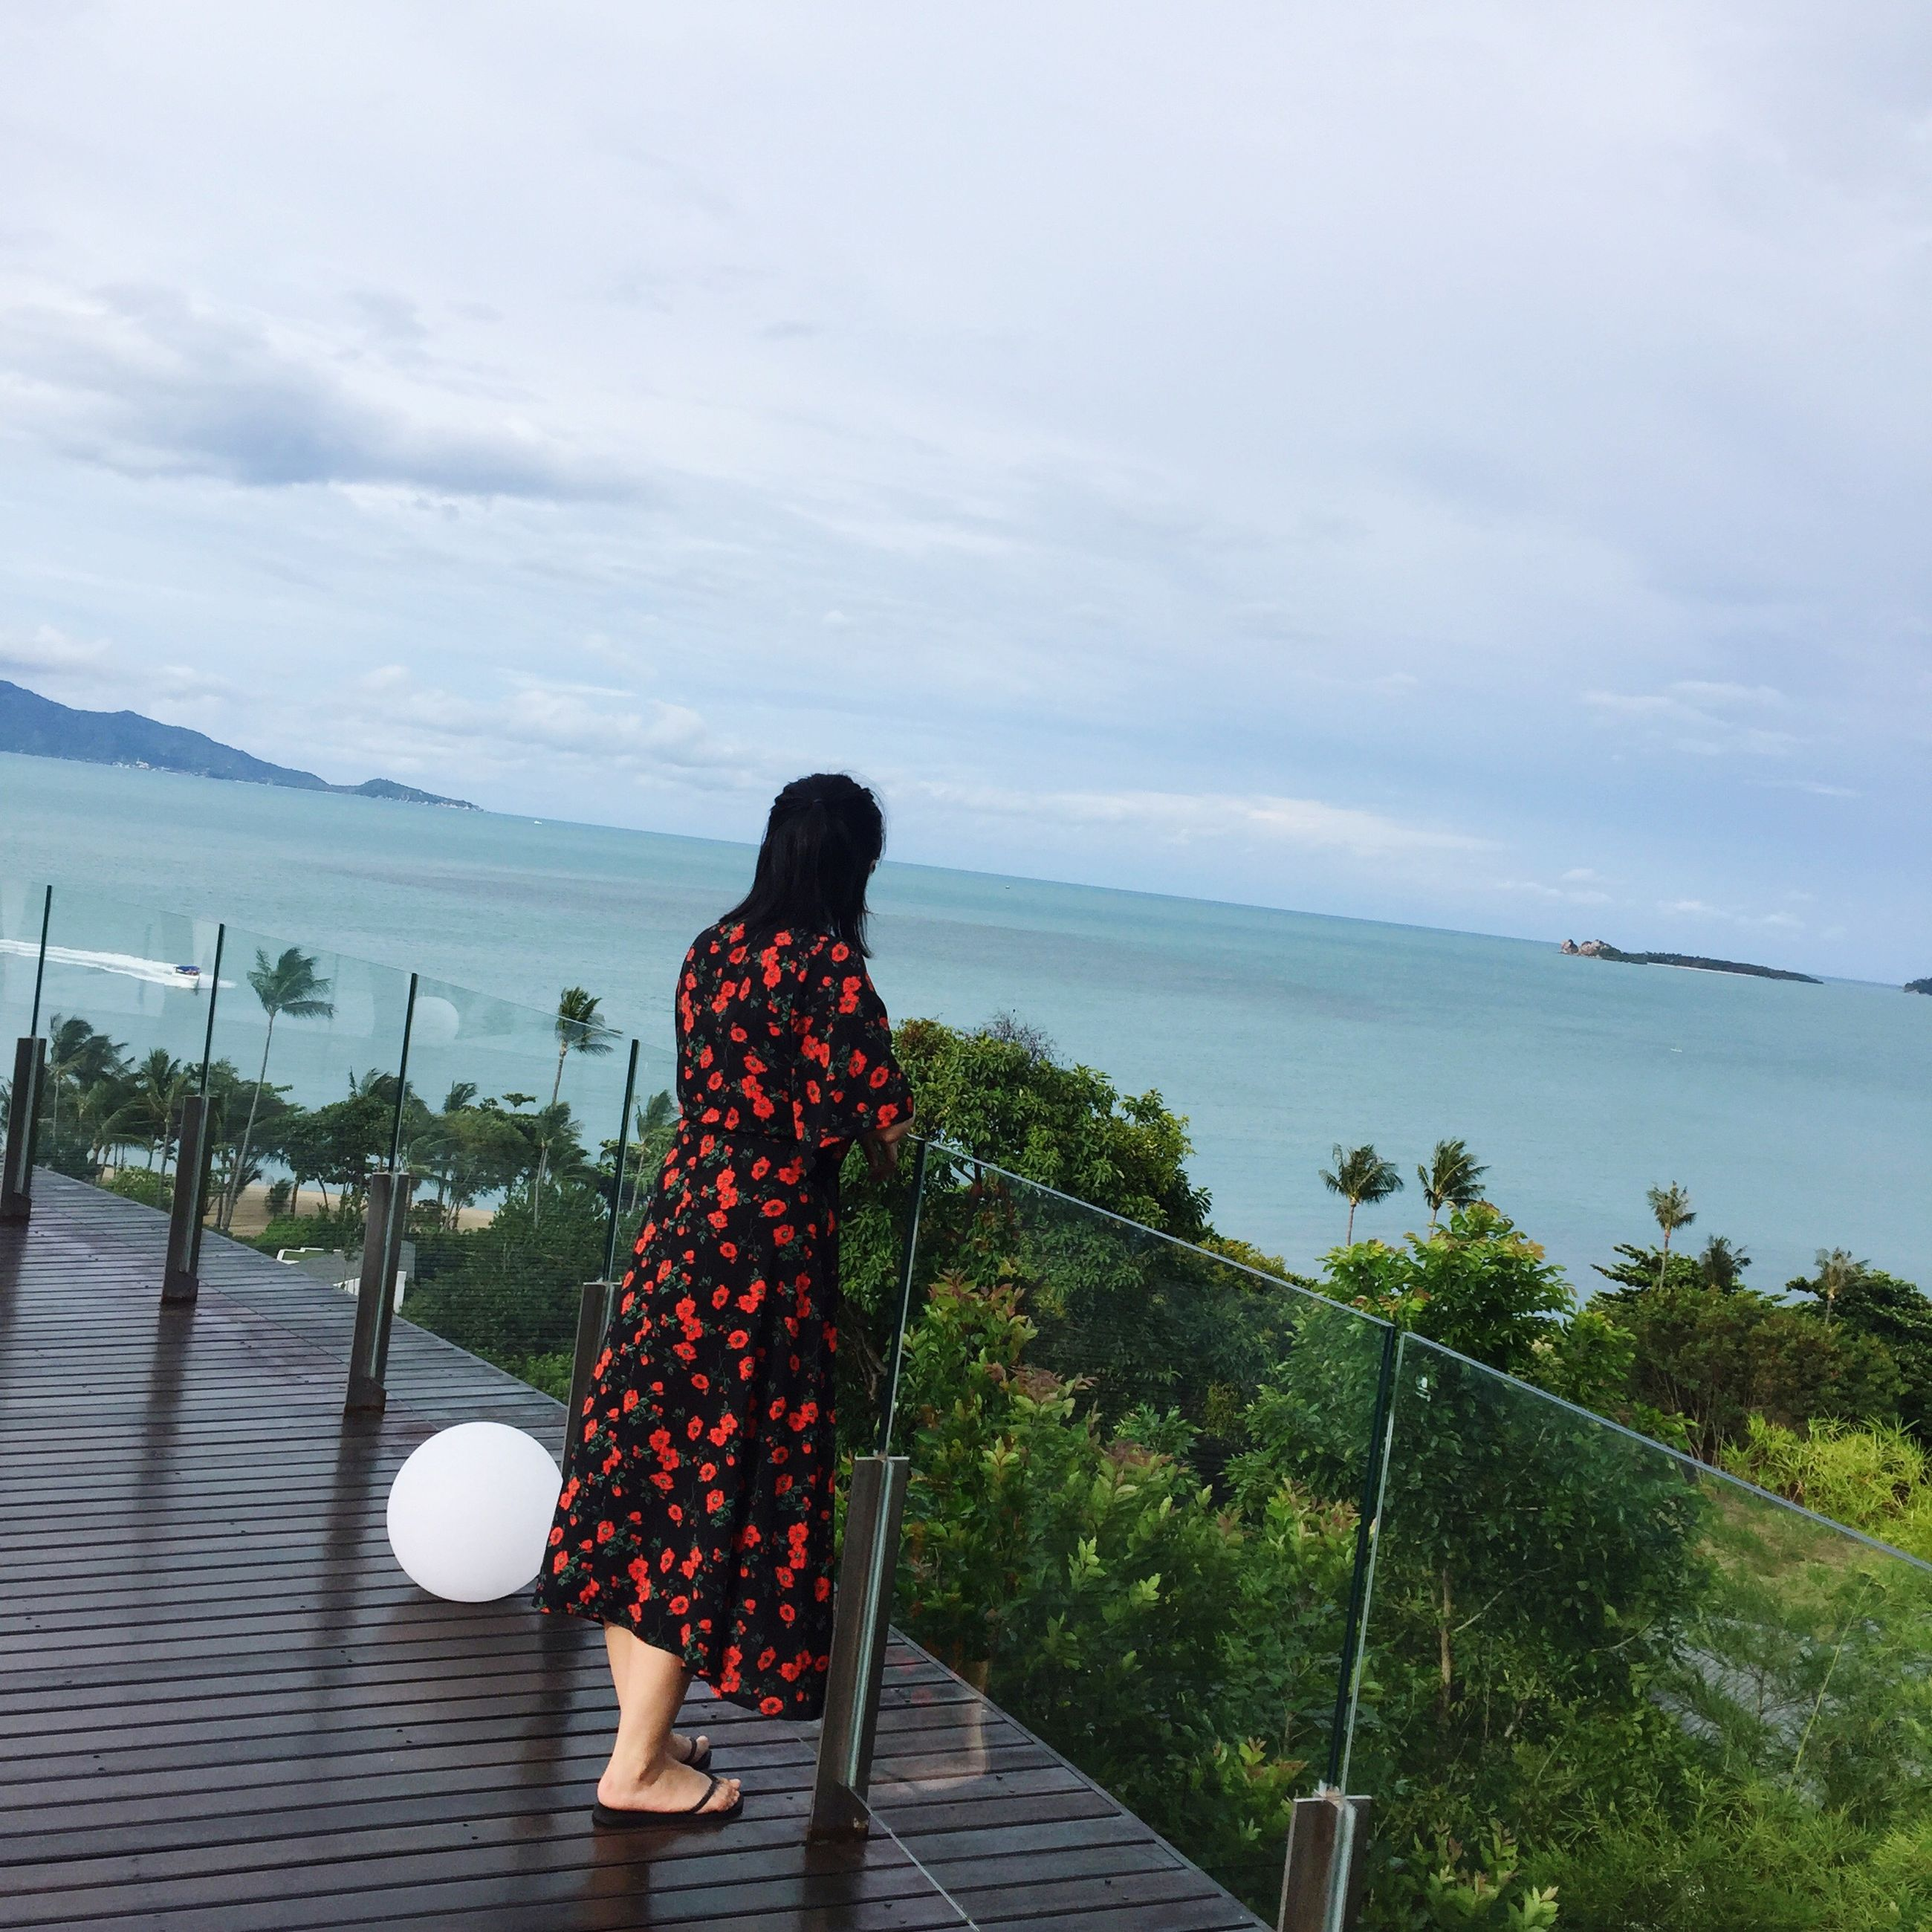 sea, rear view, water, sky, person, idyllic, tranquil scene, scenics, remote, tranquility, railing, day, casual clothing, getting away from it all, cloud, long hair, solitude, vacations, calm, cloud - sky, nature, carefree, beauty in nature, ocean, outdoors, tourism, coastline